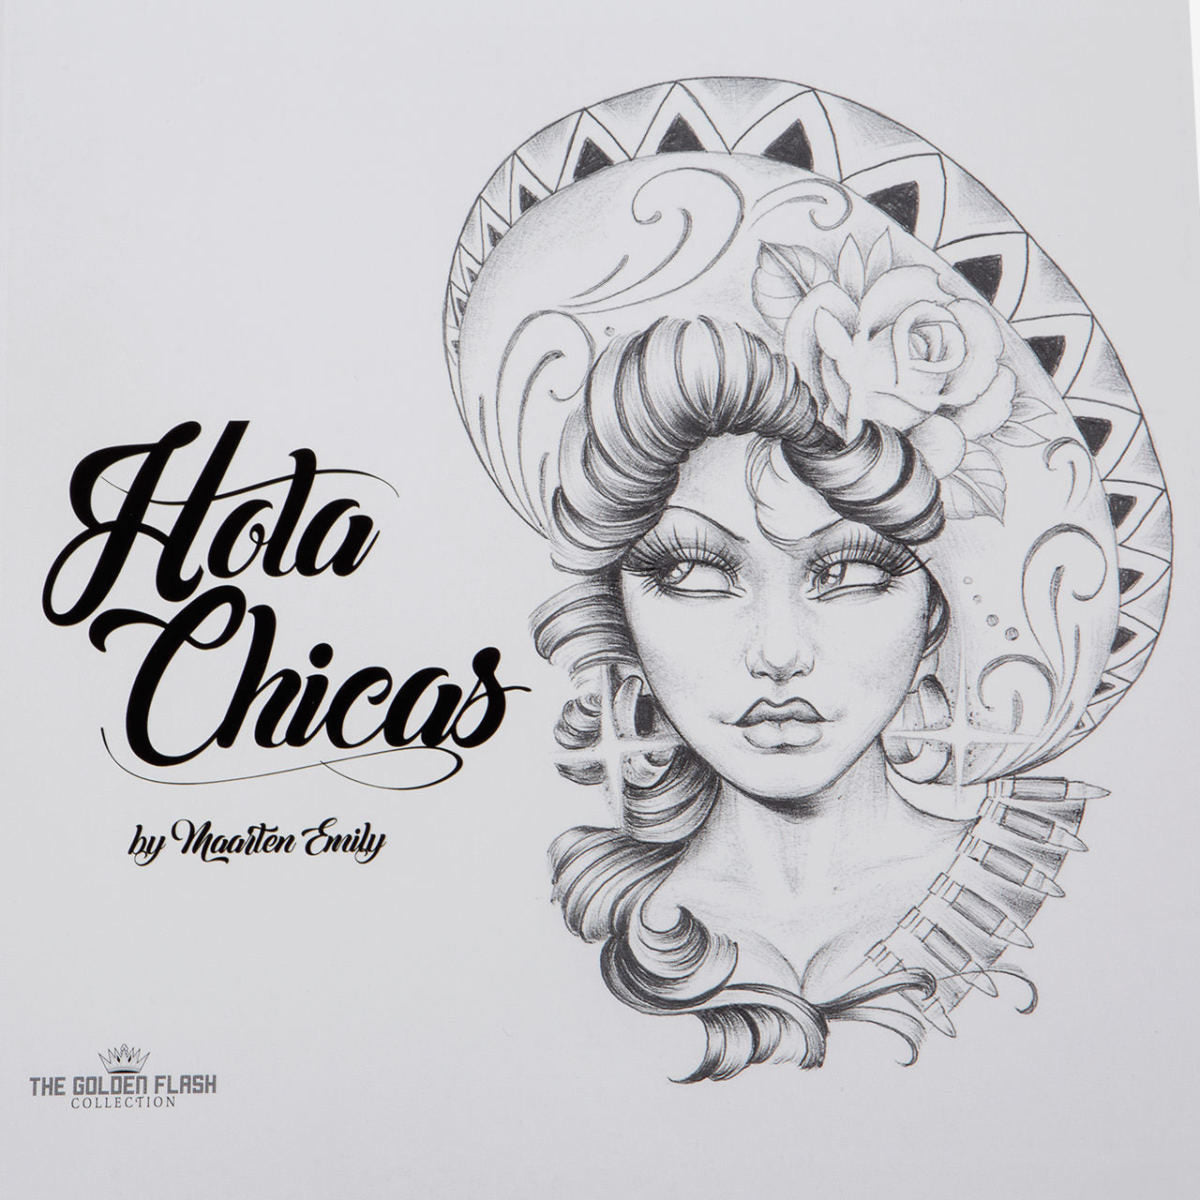 Hole Chicas by Maarten Emily